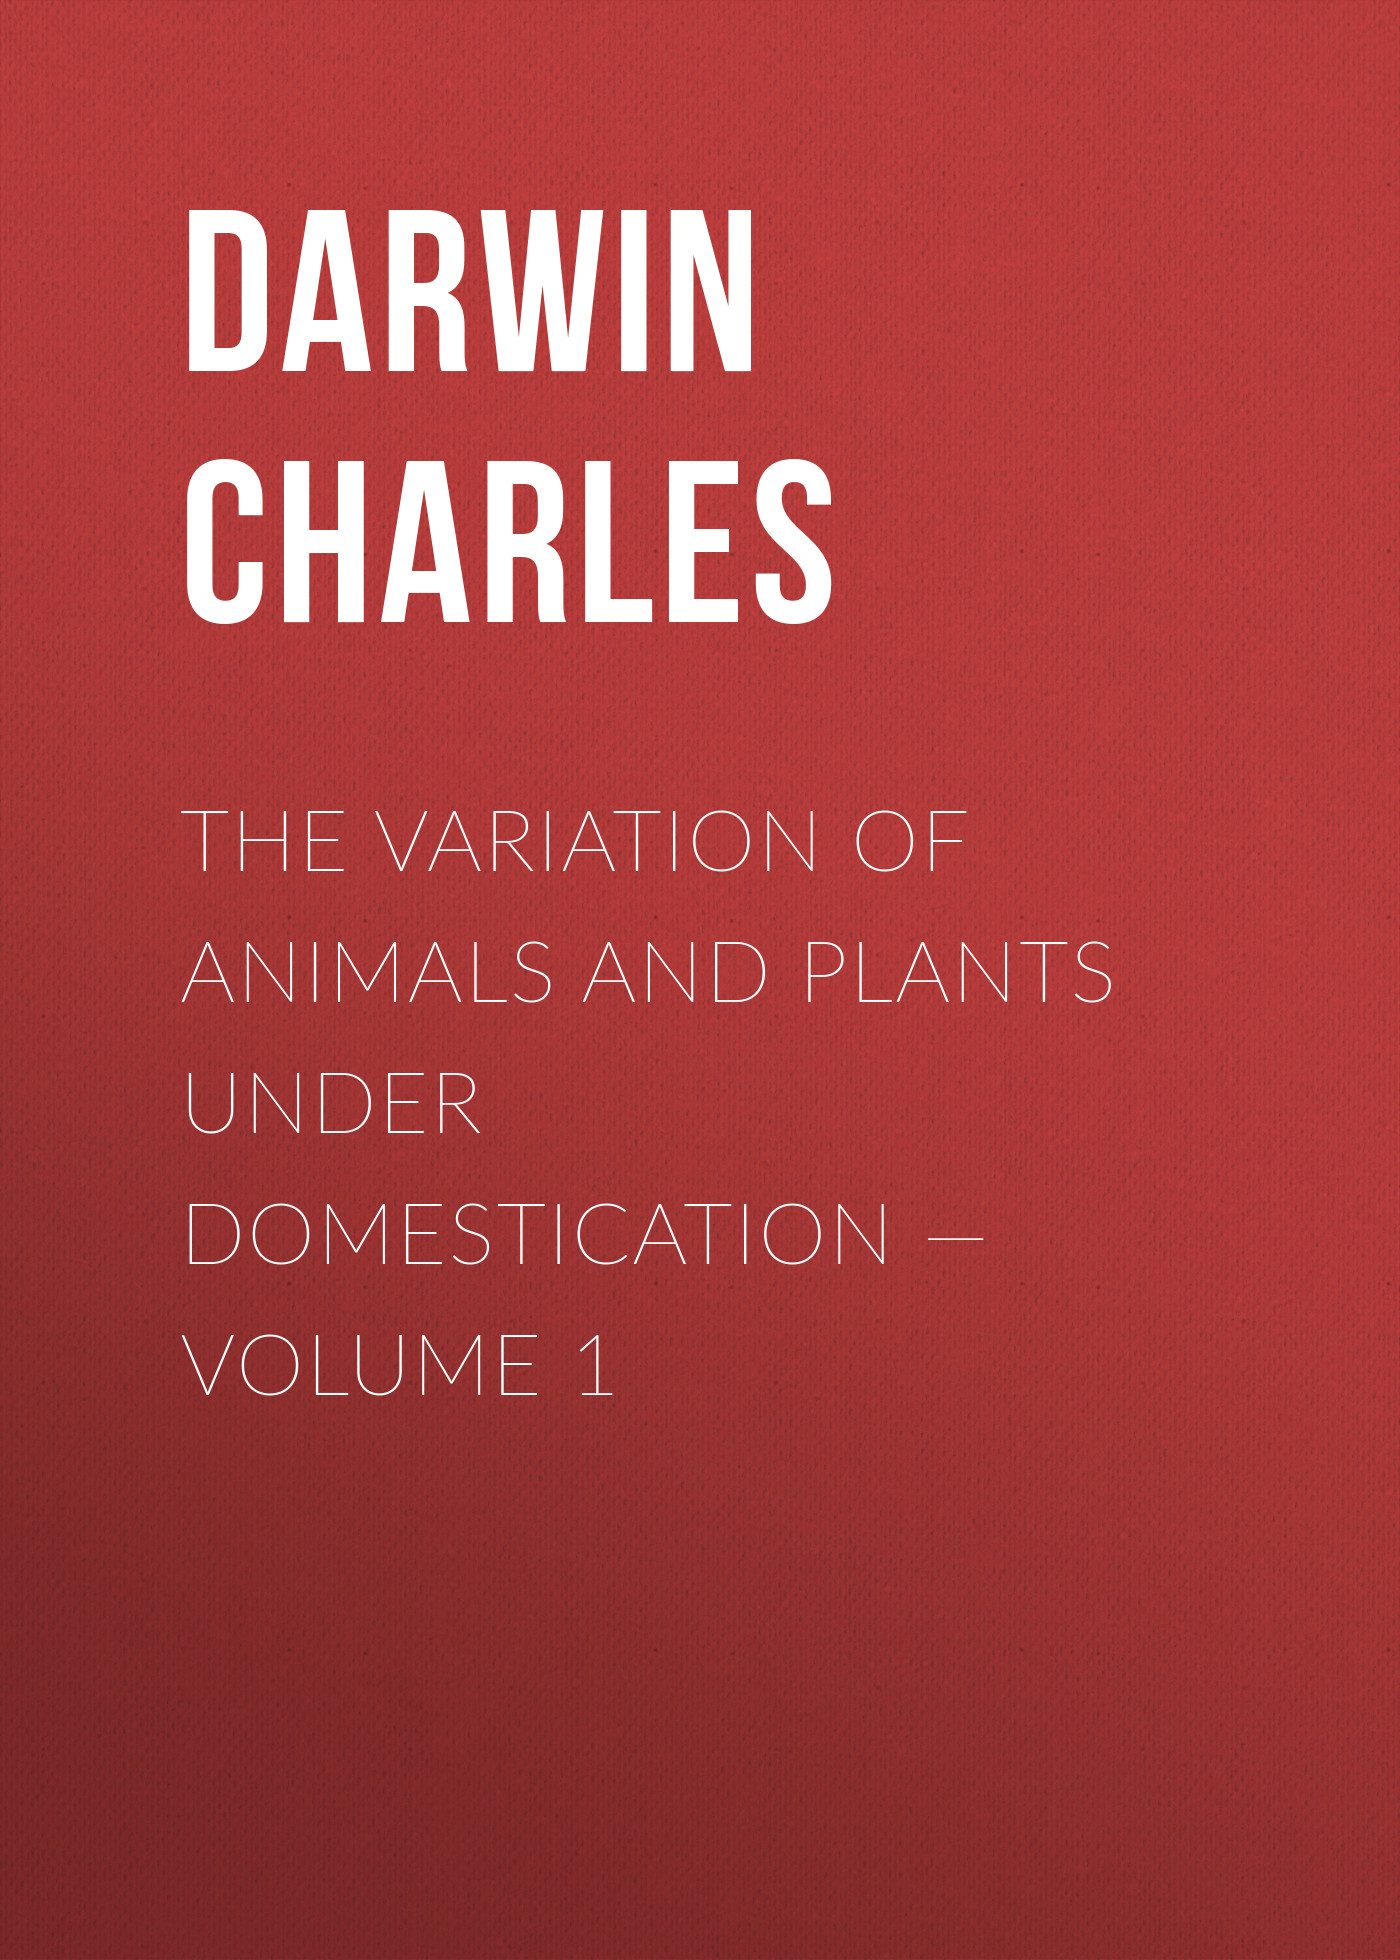 Чарльз Дарвин The Variation of Animals and Plants under Domestication — Volume 1 maria bittner temporality universals and variation